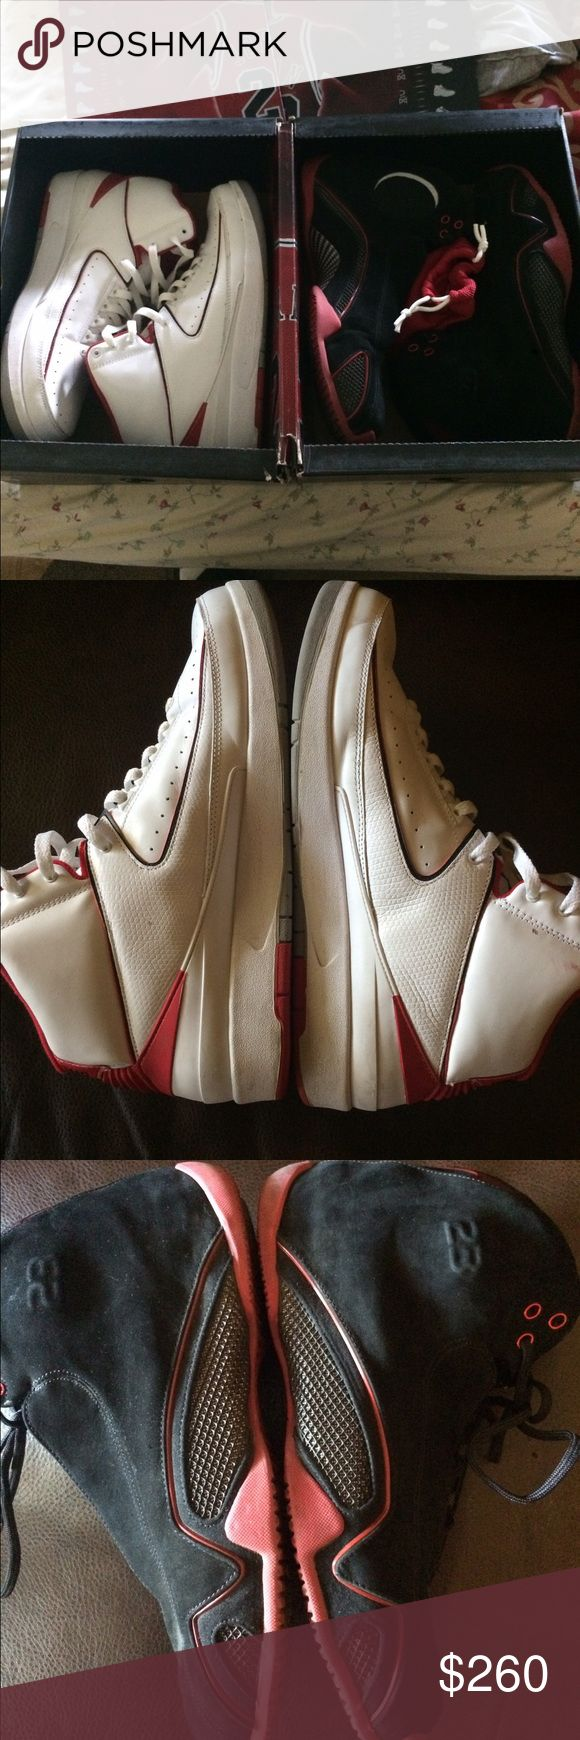 Jordan 21/2 Collezione Pack Jordan 21/2 Collezione Pack released in 2008. Shoes are in excellent condition 8.5/10. Only minor creasing on toe box of 2s. I have original Eastbay receipt. Size 14 Jordan Shoes Sneakers